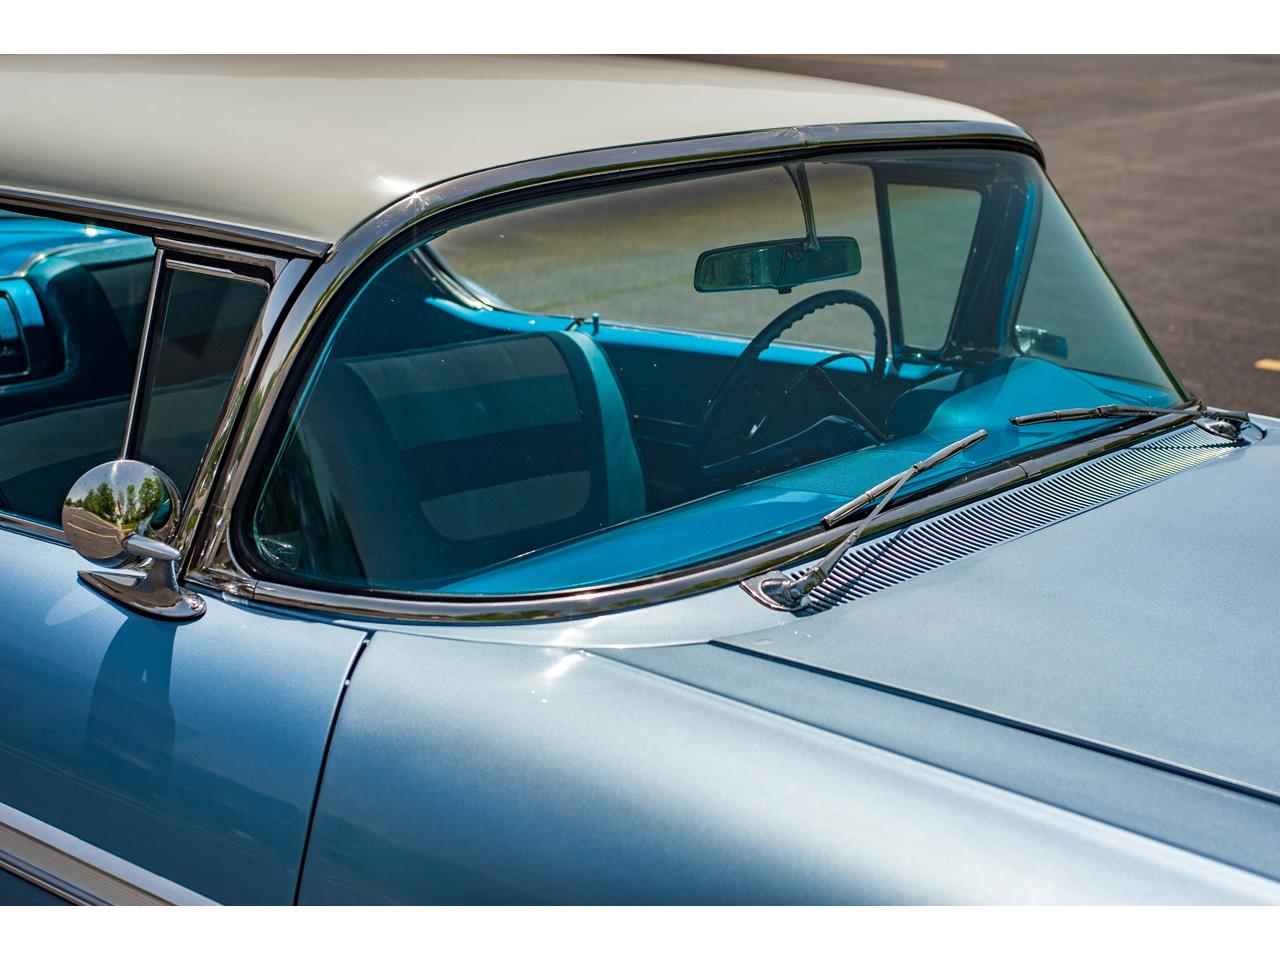 Large Picture of Classic '58 Impala located in Illinois Offered by Gateway Classic Cars - St. Louis - QB9Q